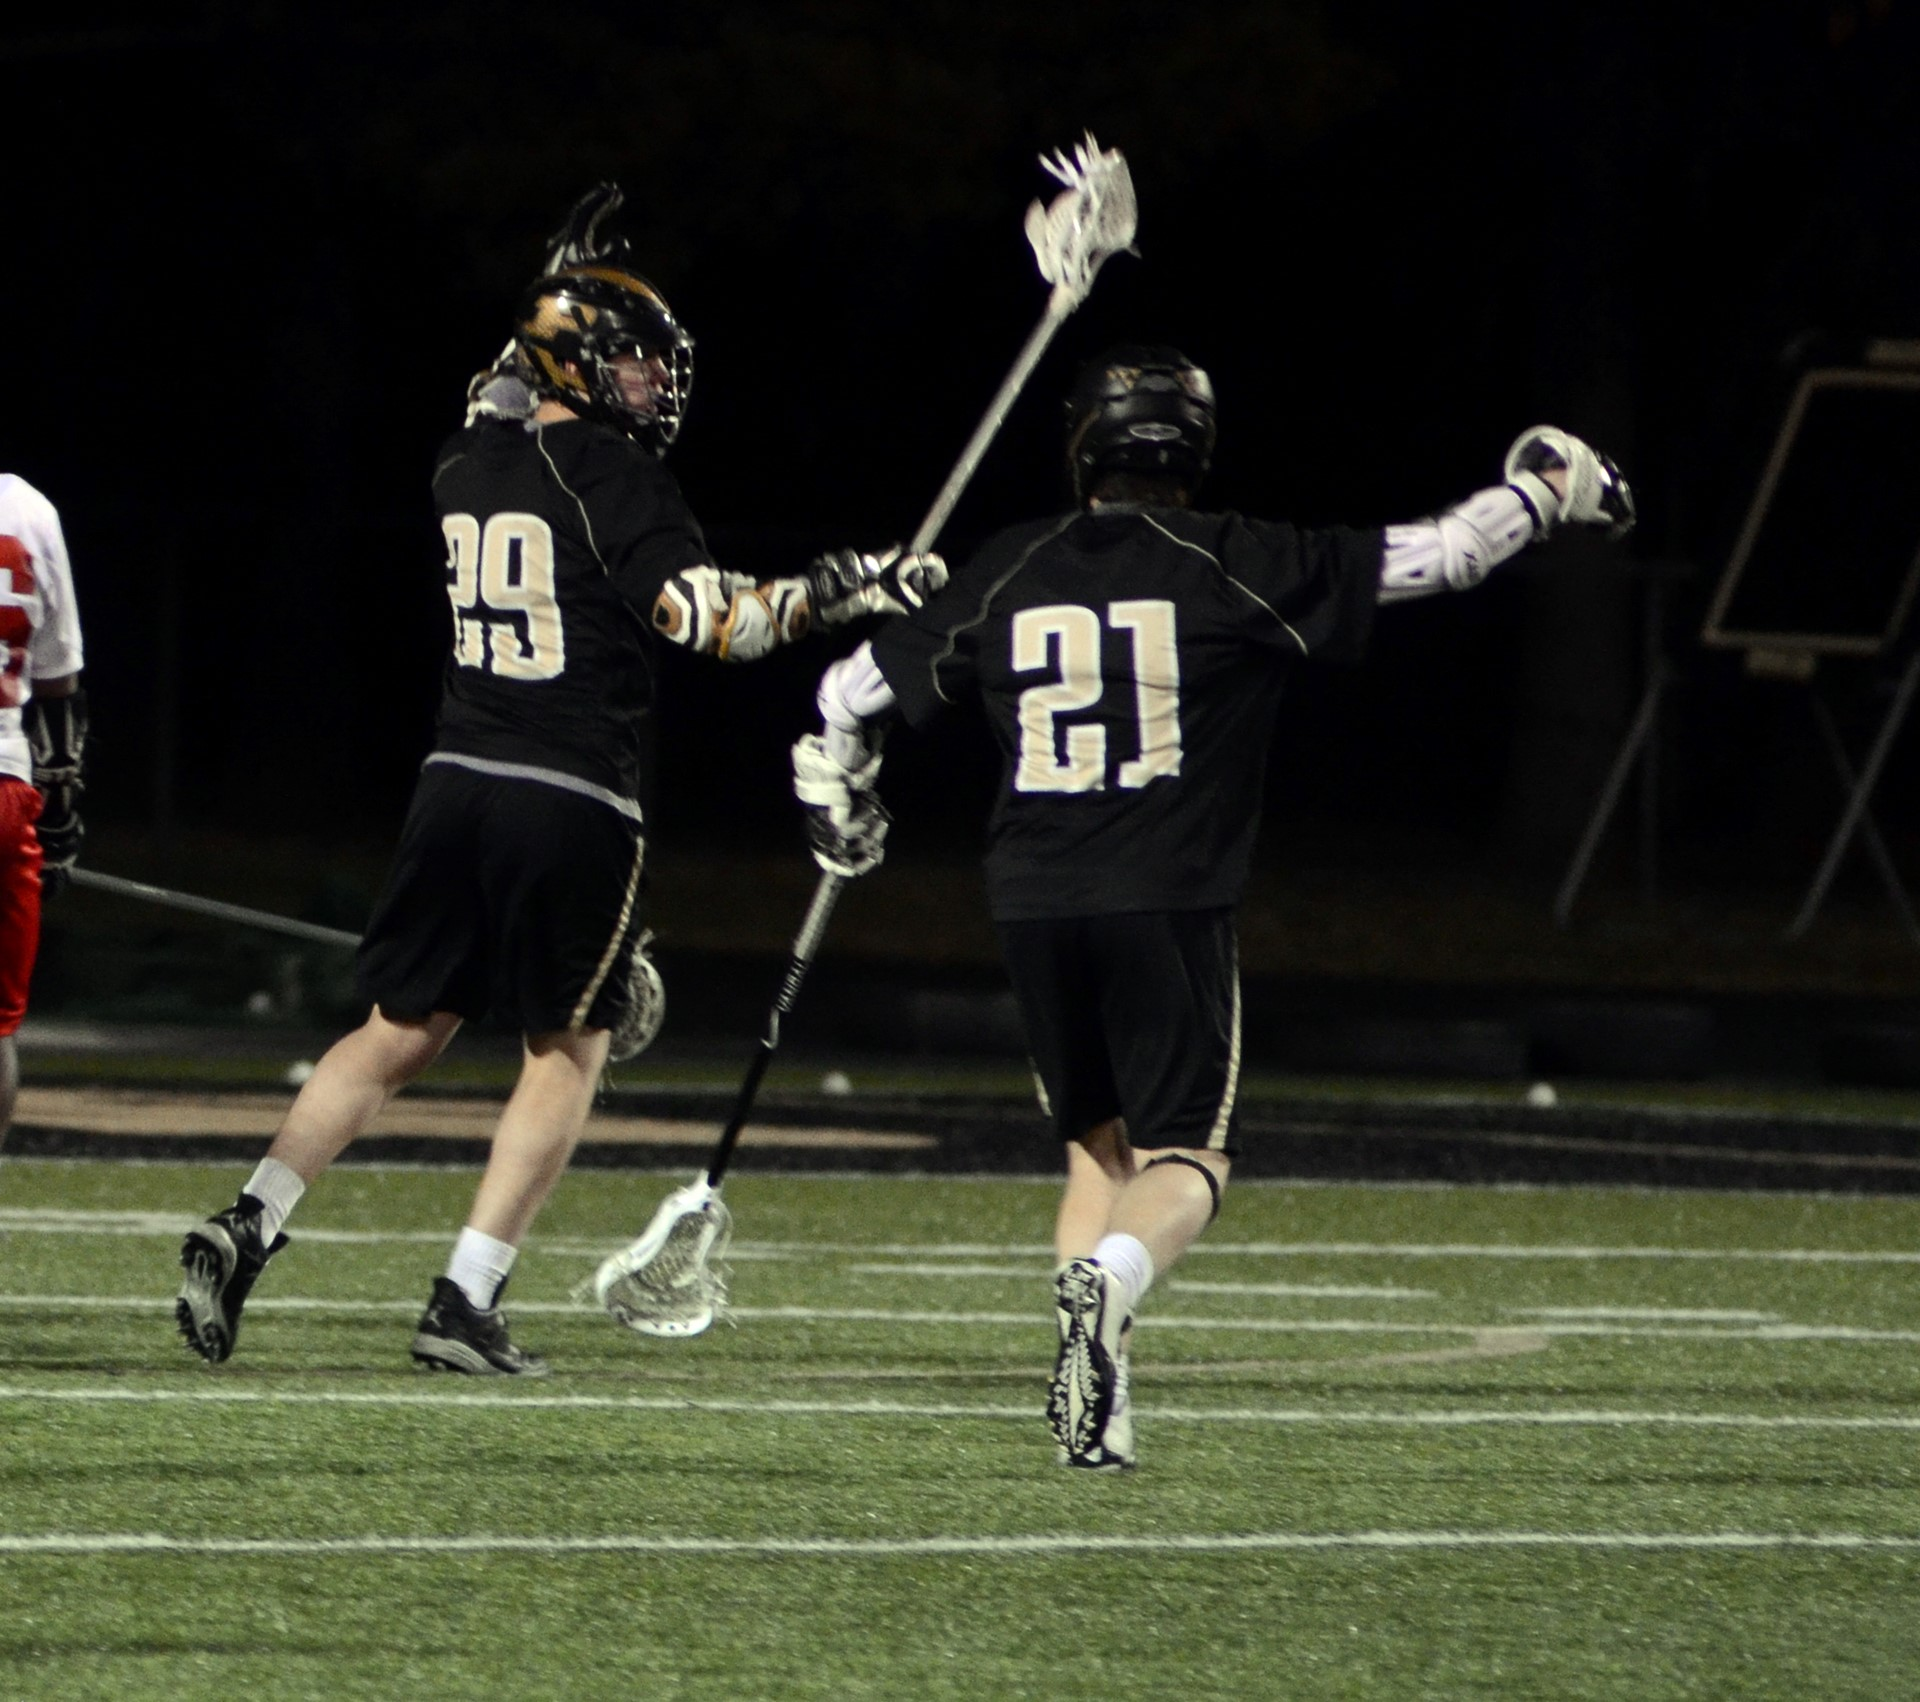 two lacrosse players on the field